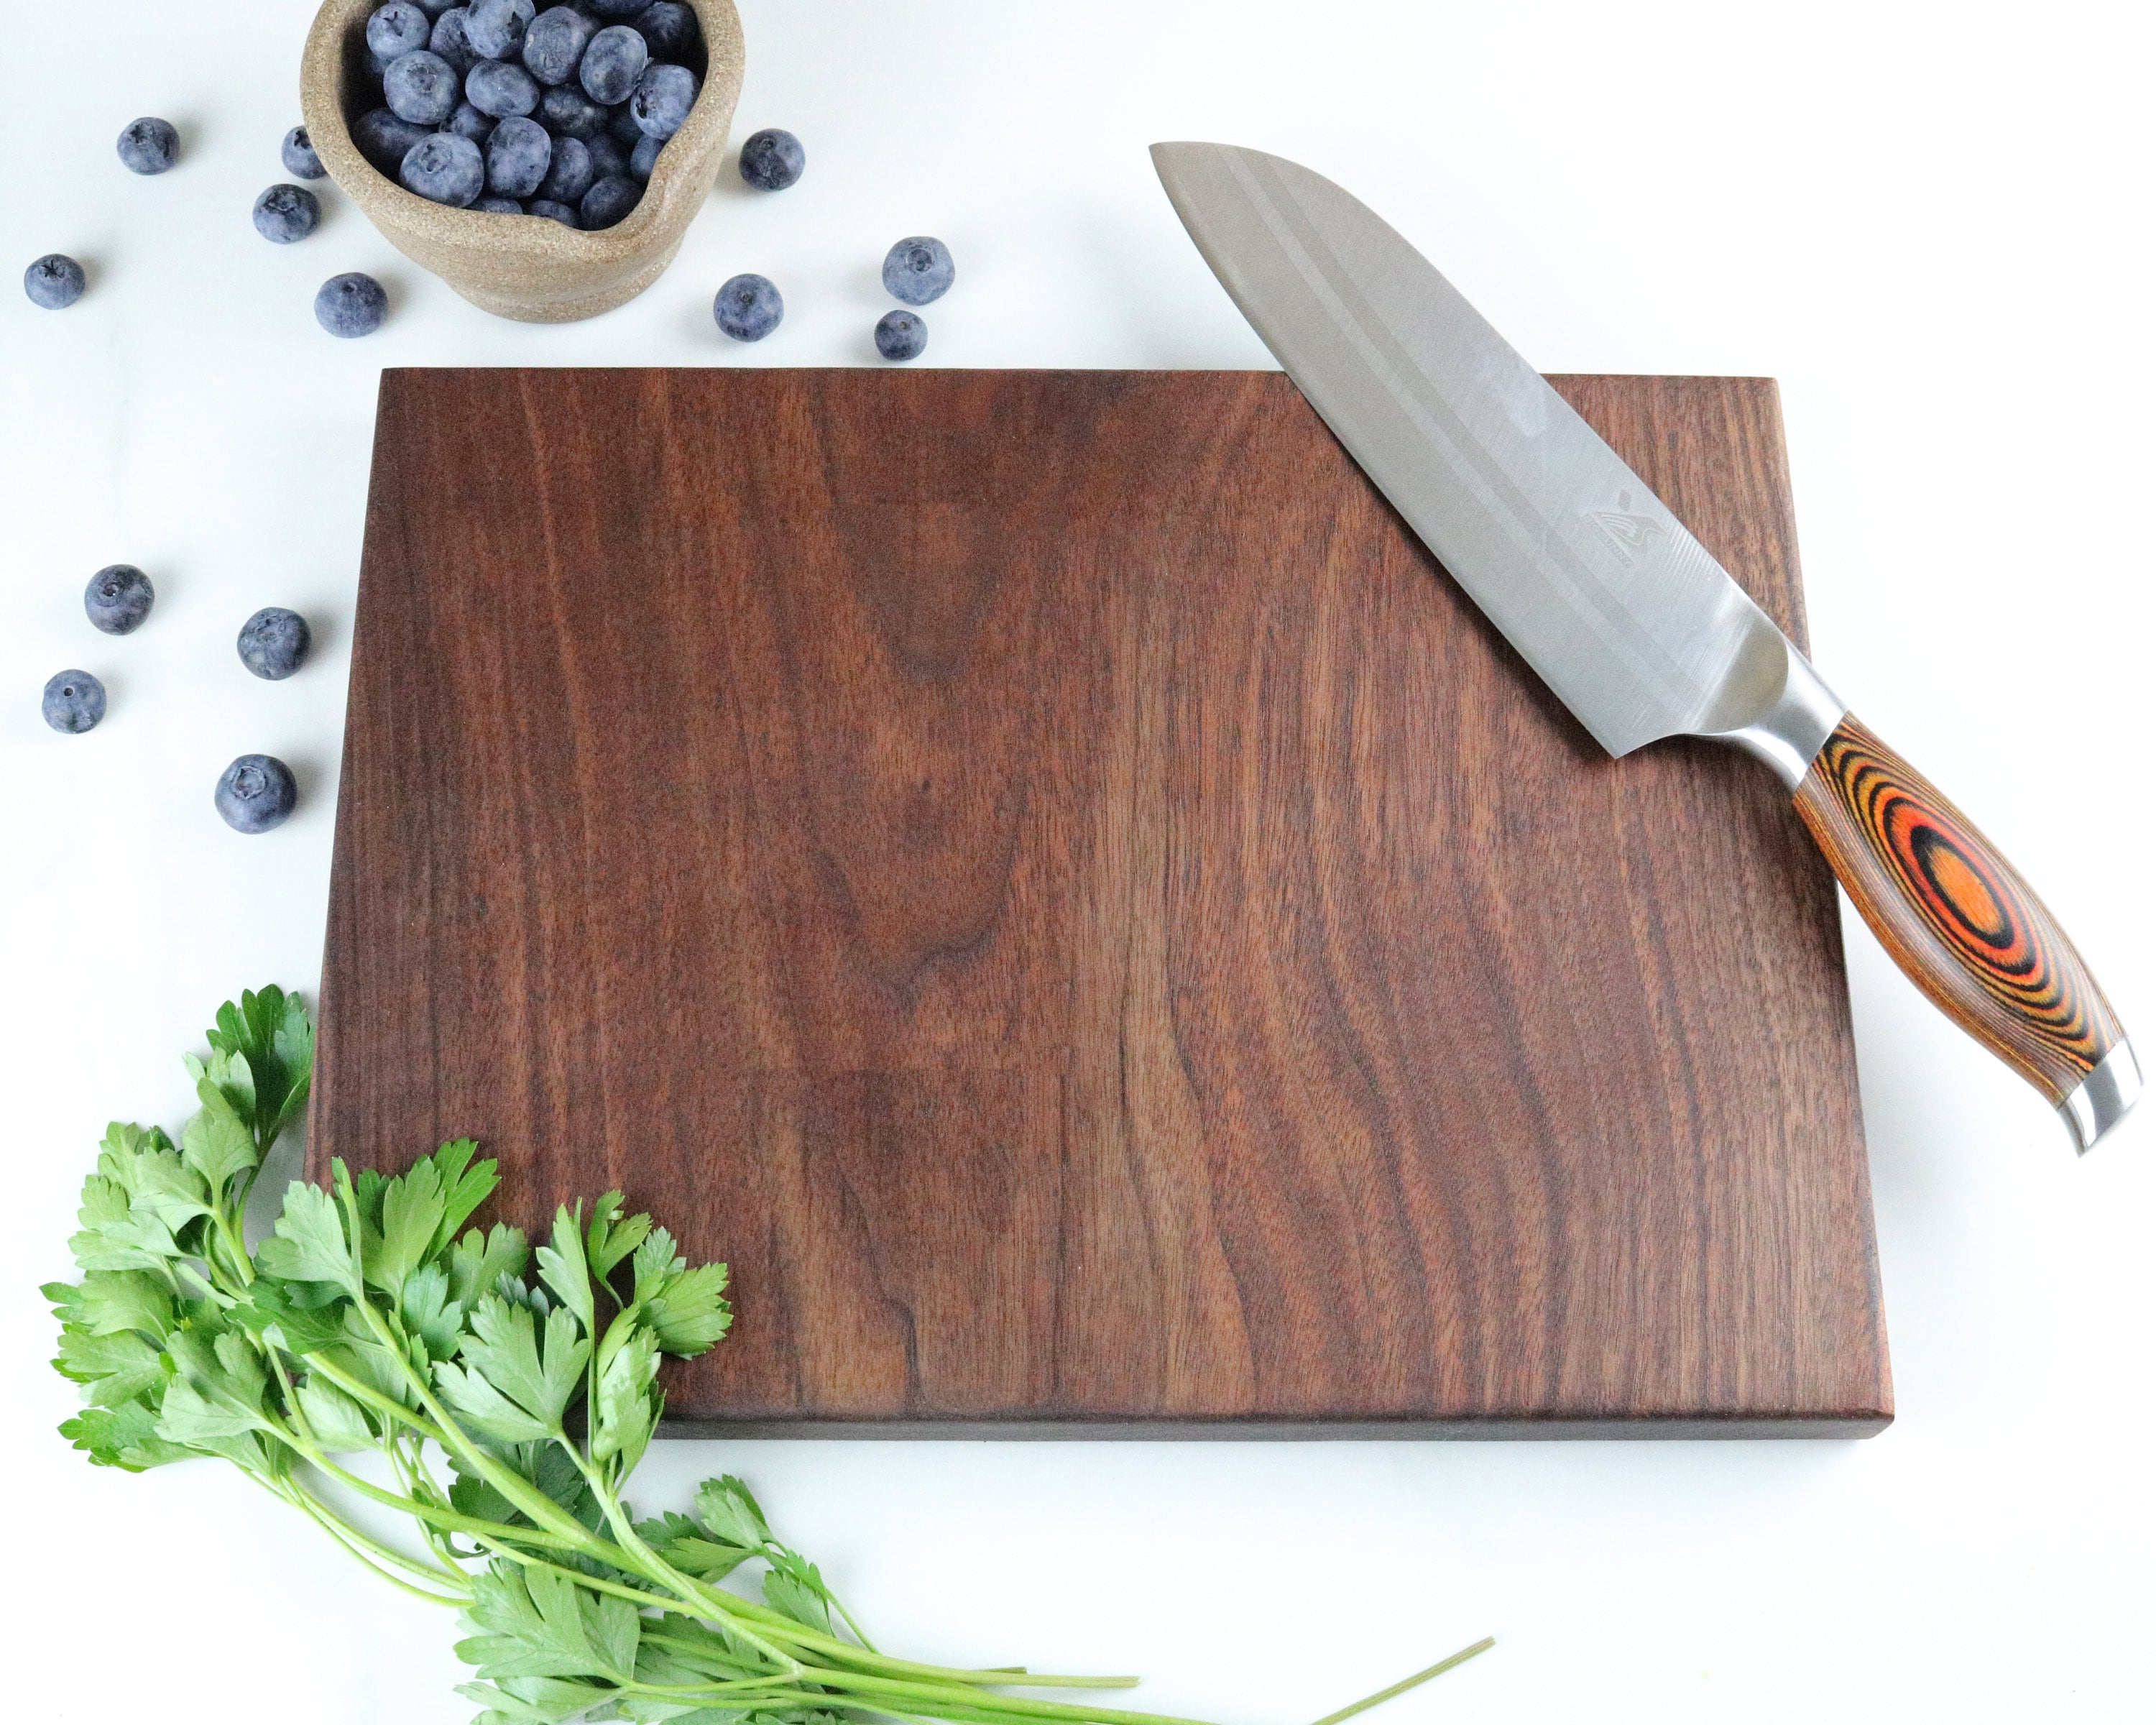 Engraved Cutting Board Customized Chopping Board Gifts for image 2